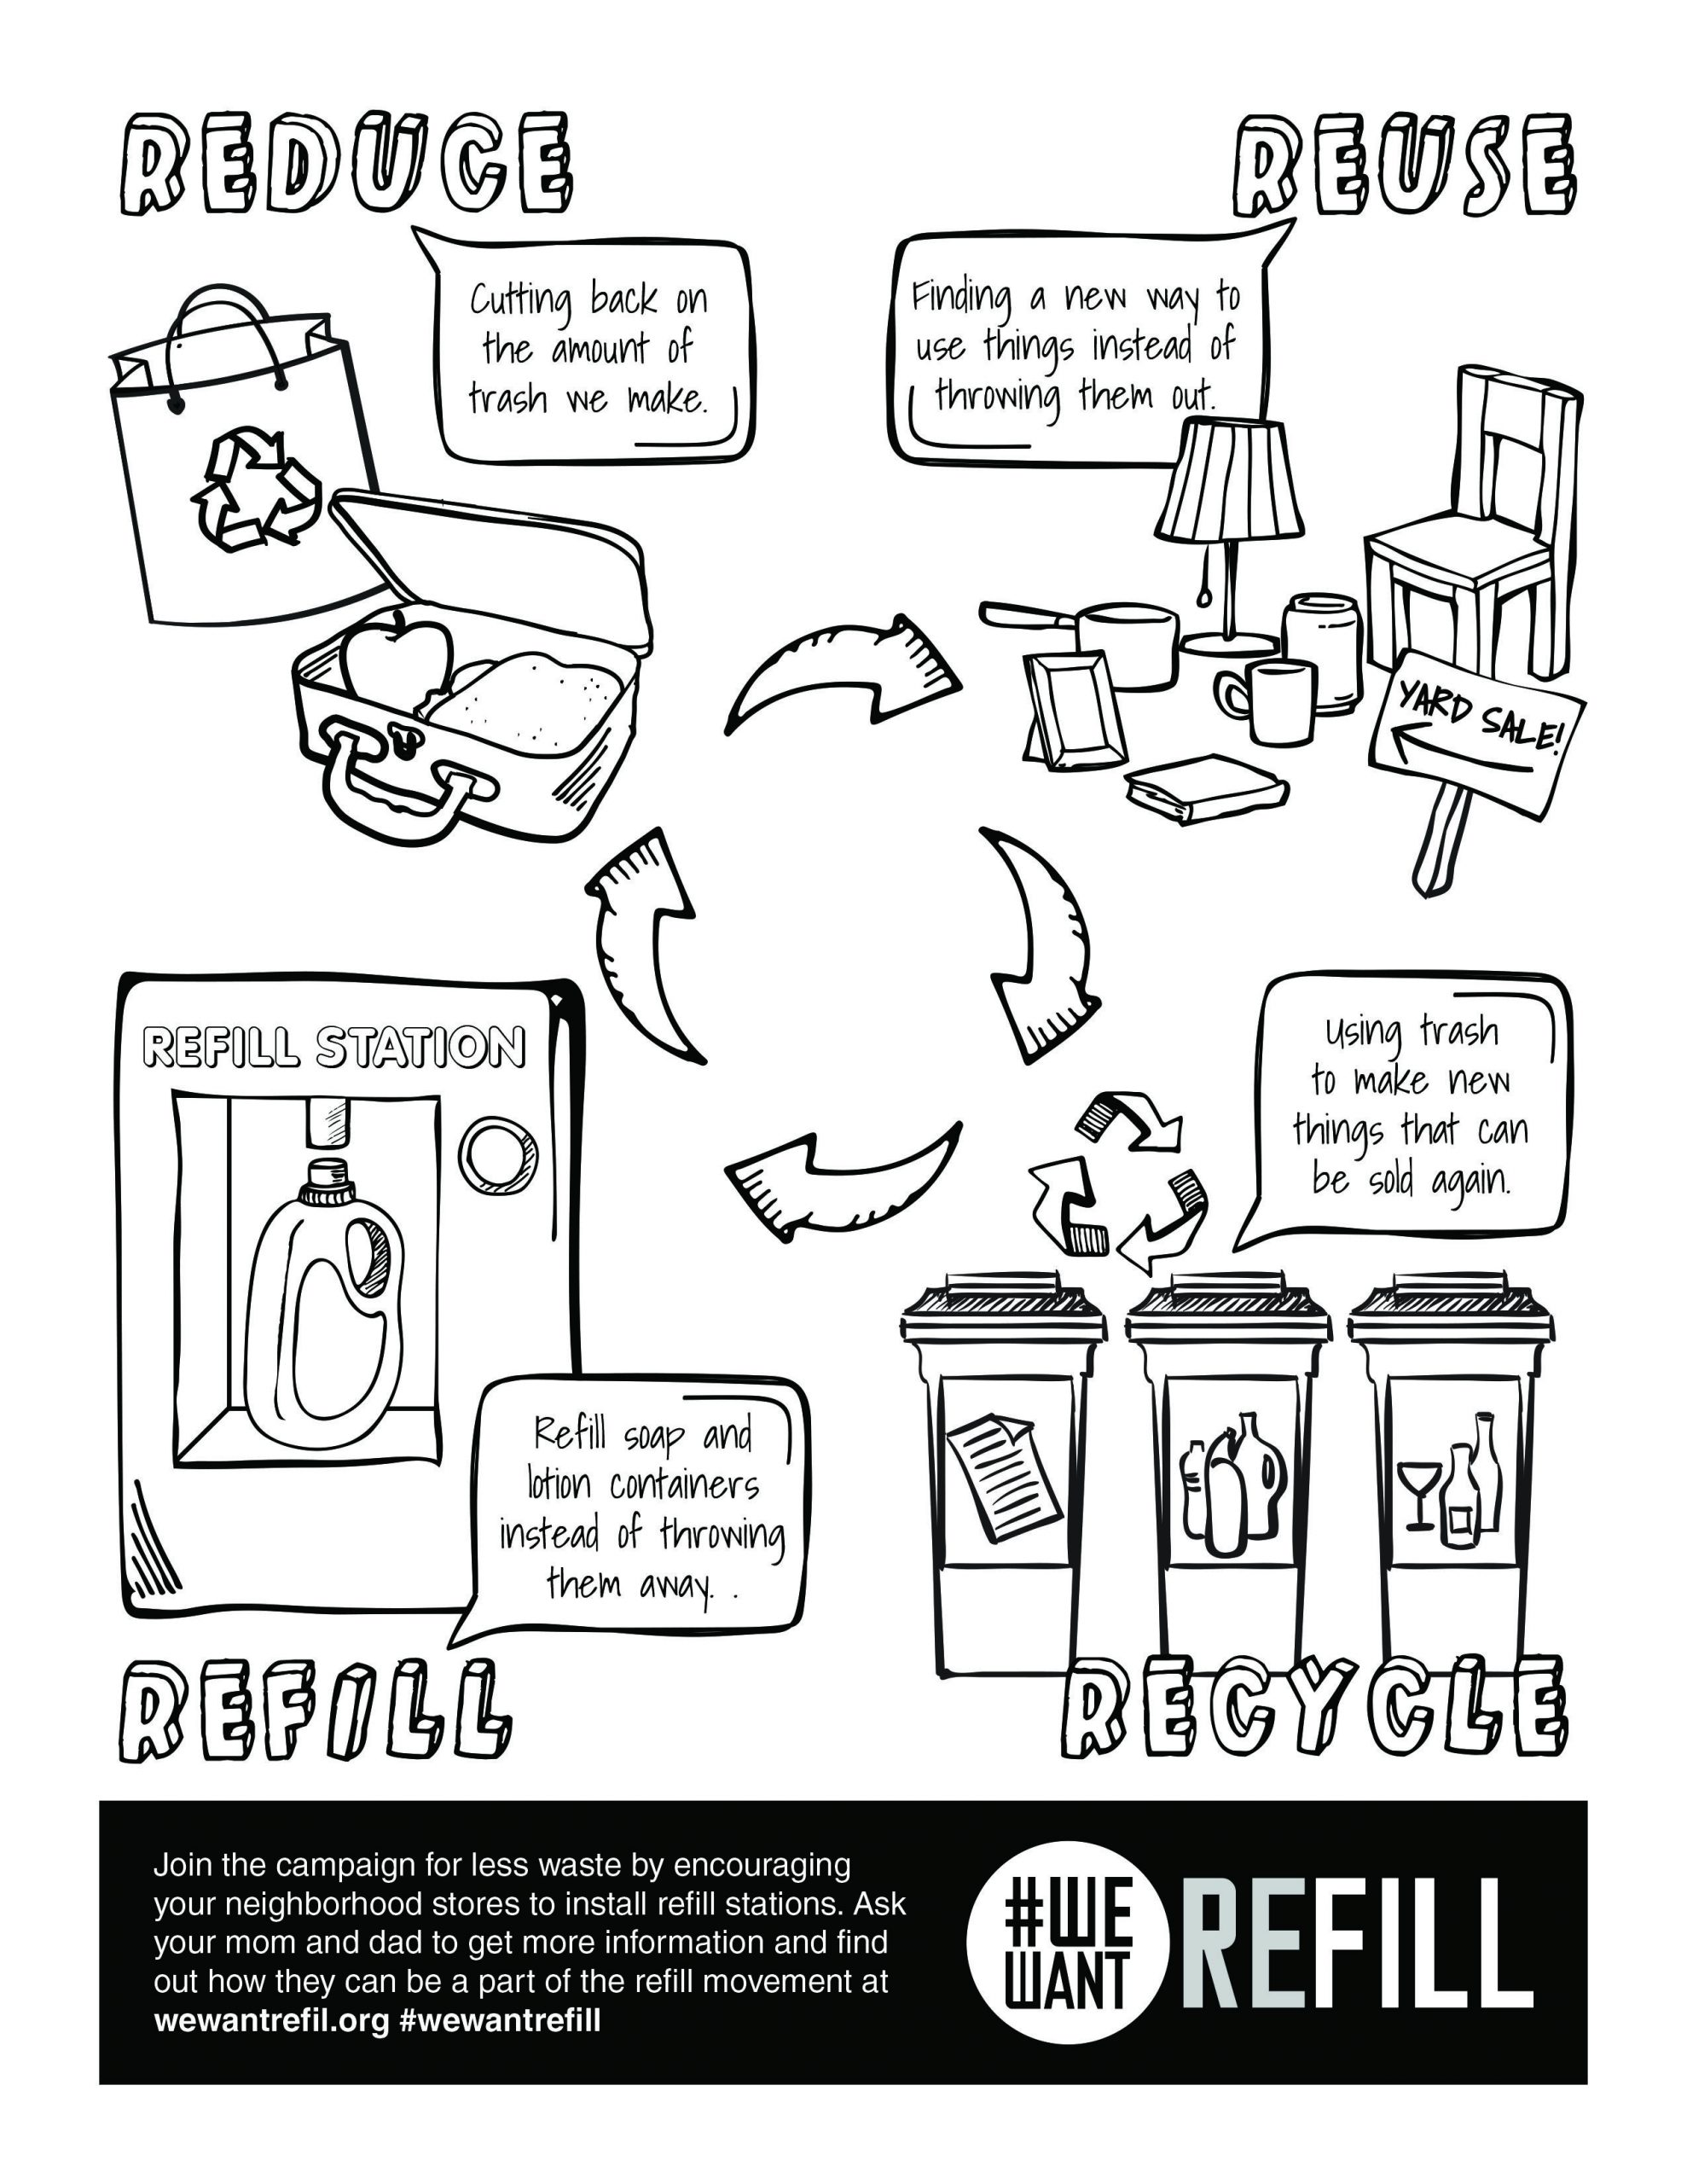 Recycle Worksheets for Preschoolers Free Downloadable Coloring Page for Kids We Want Refill